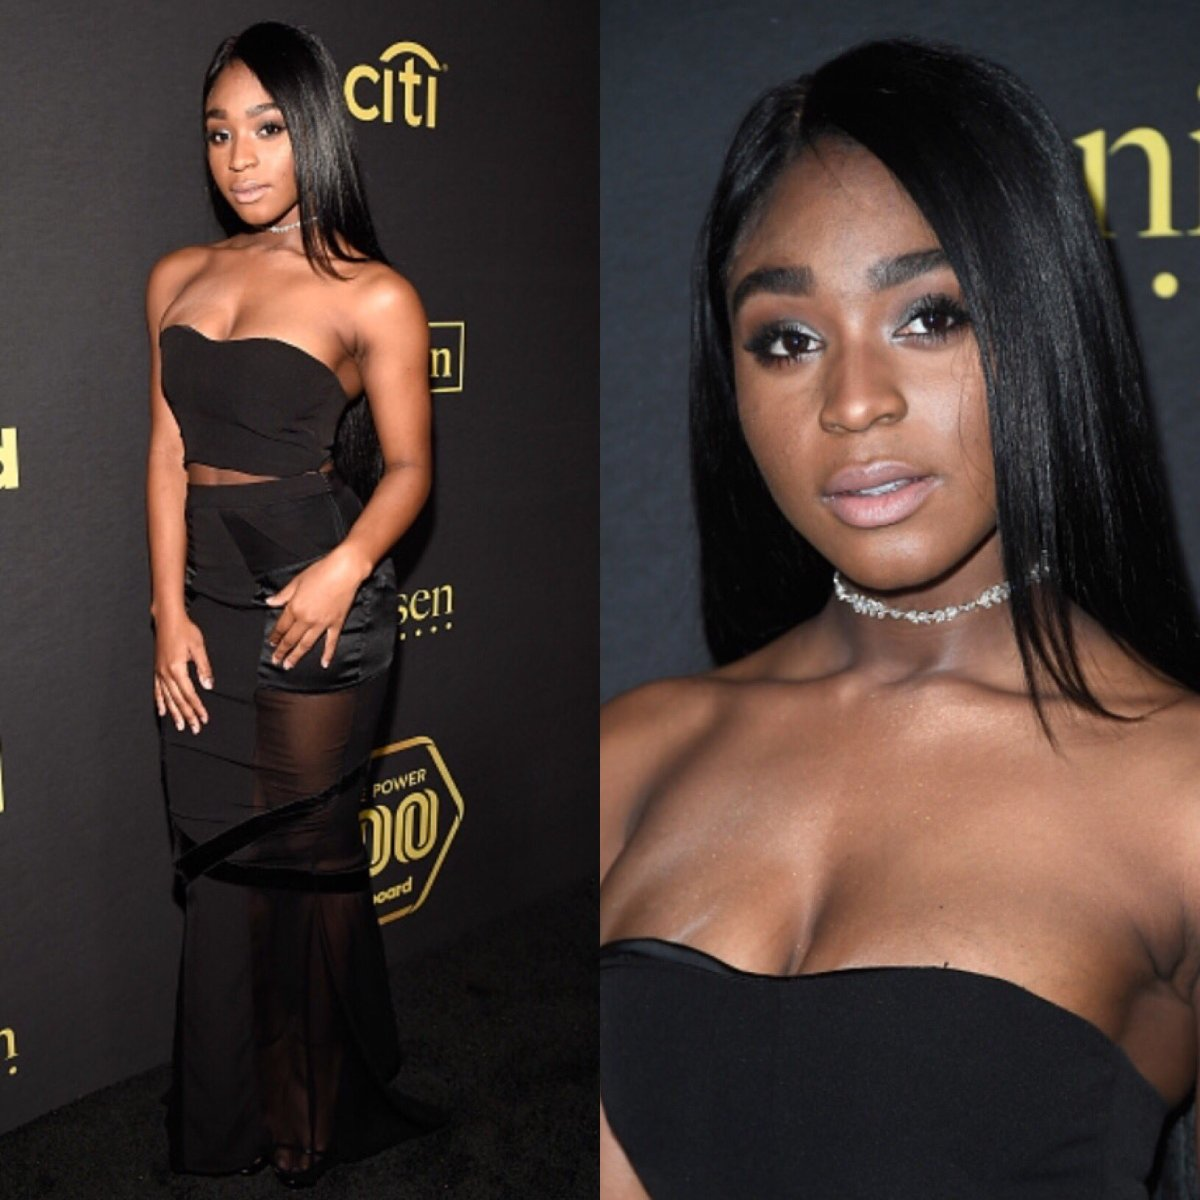 Normani Kordei Of Fifth Harmony Arrives to Billboards Power 100 Party